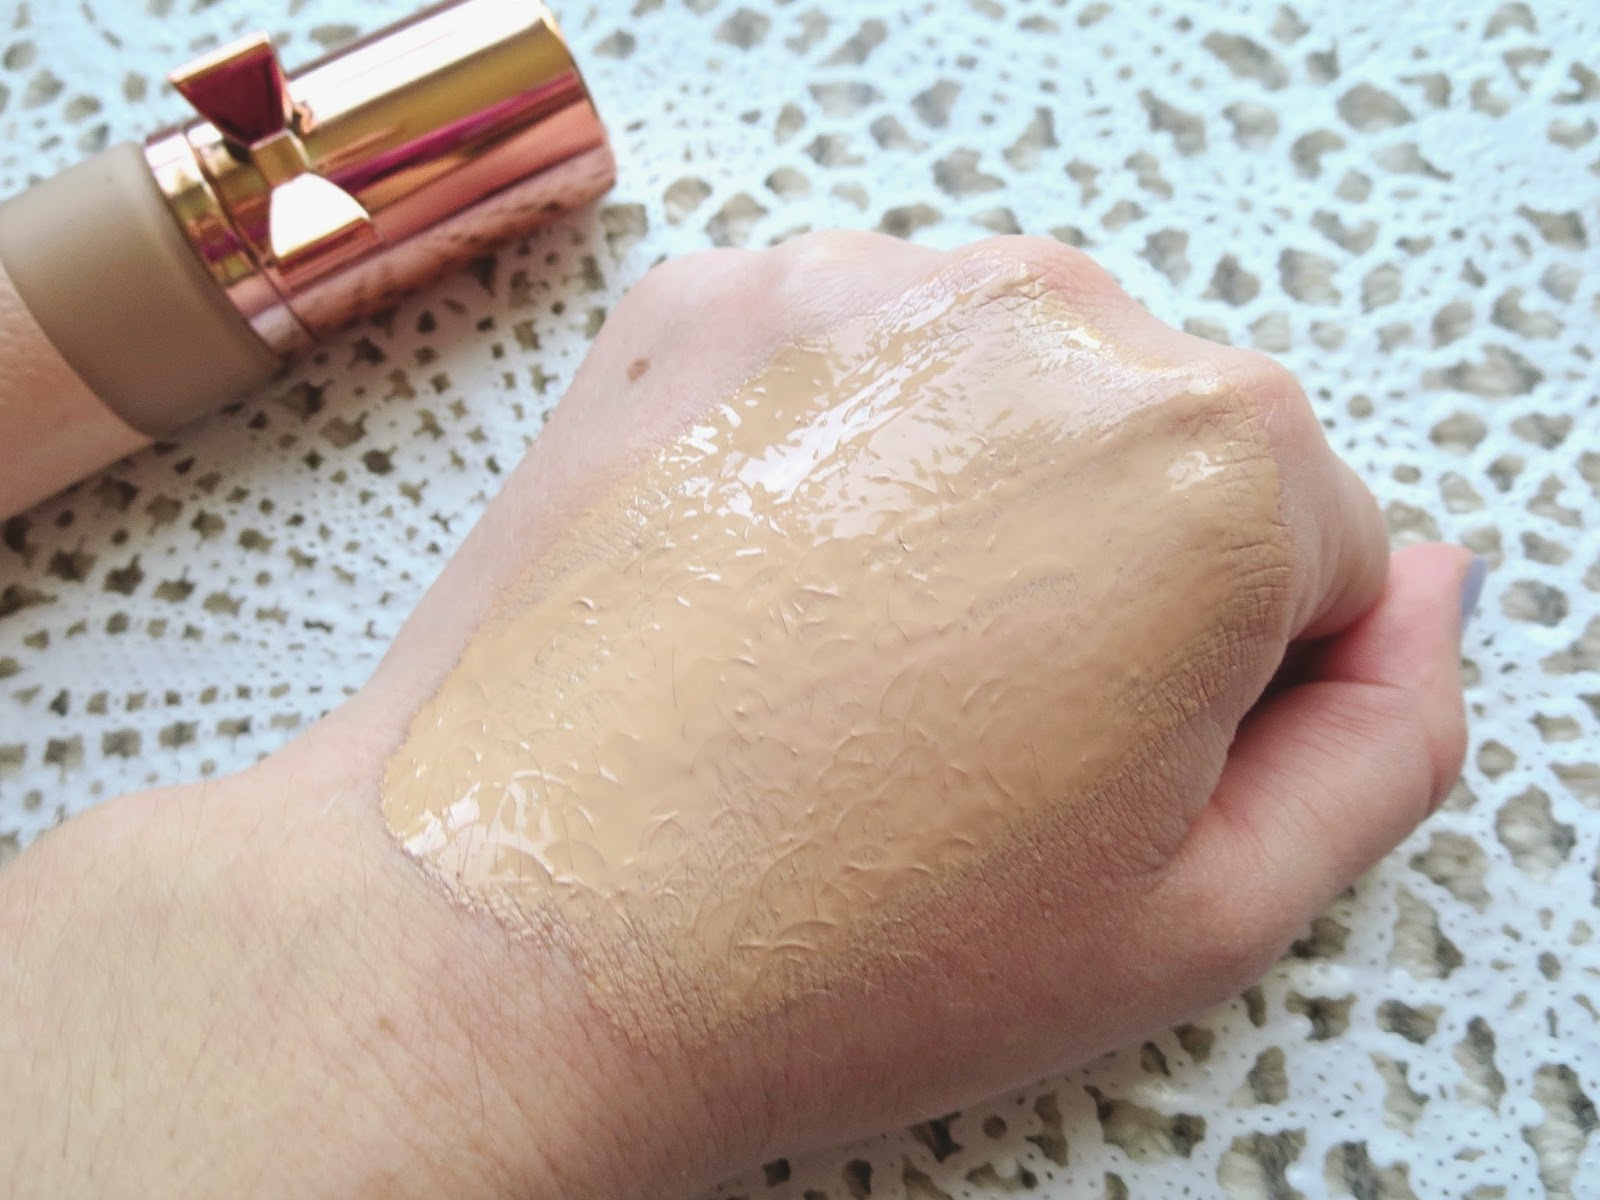 a picture of Physician's Formula Touch of Glow Foundation in Light (swatch) spread out